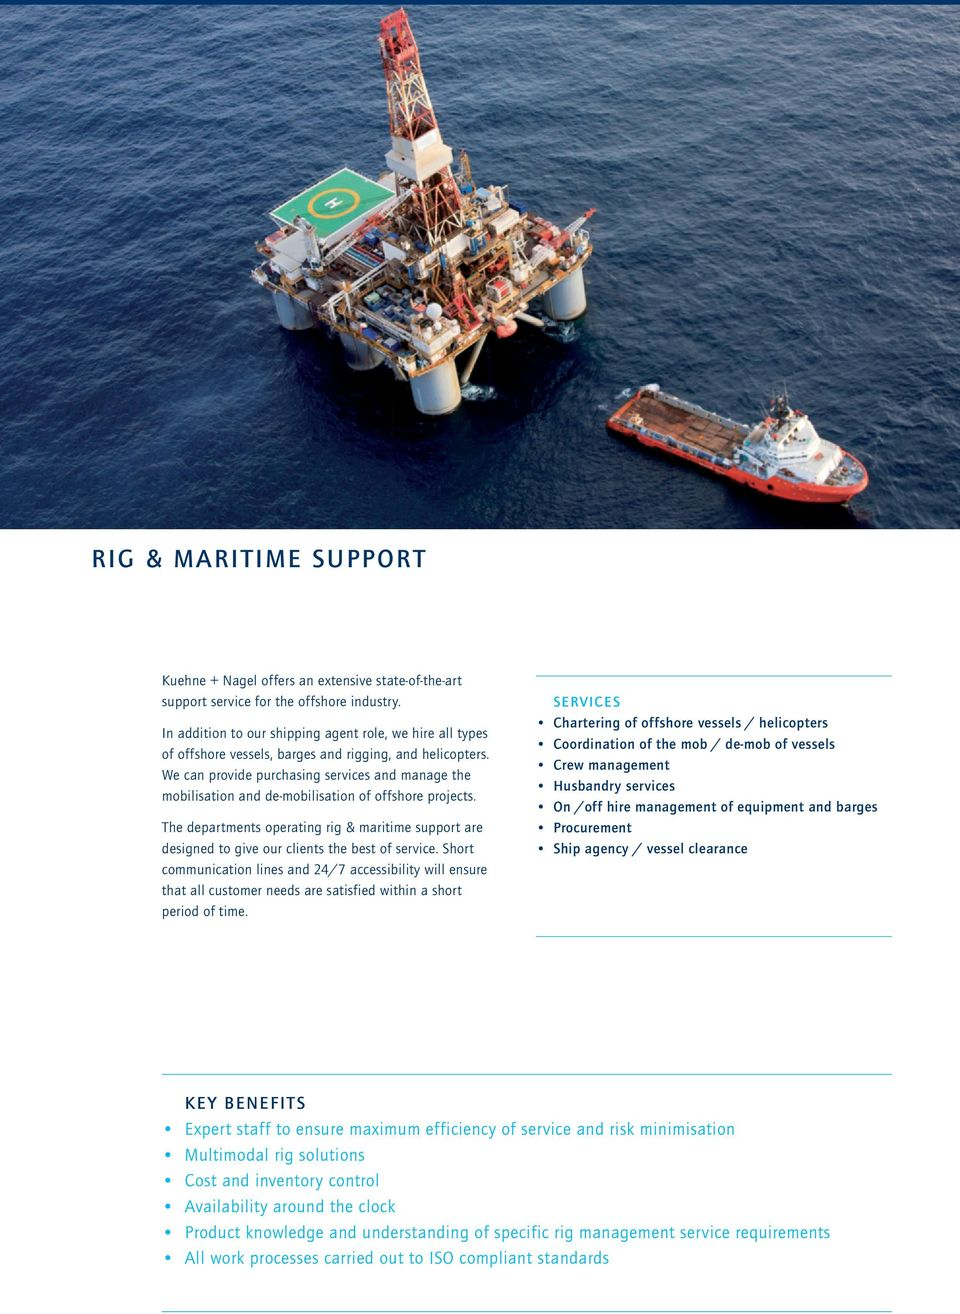 We can provide purchasing services and manage the mobilisation and de-mobilisation of offshore projects.